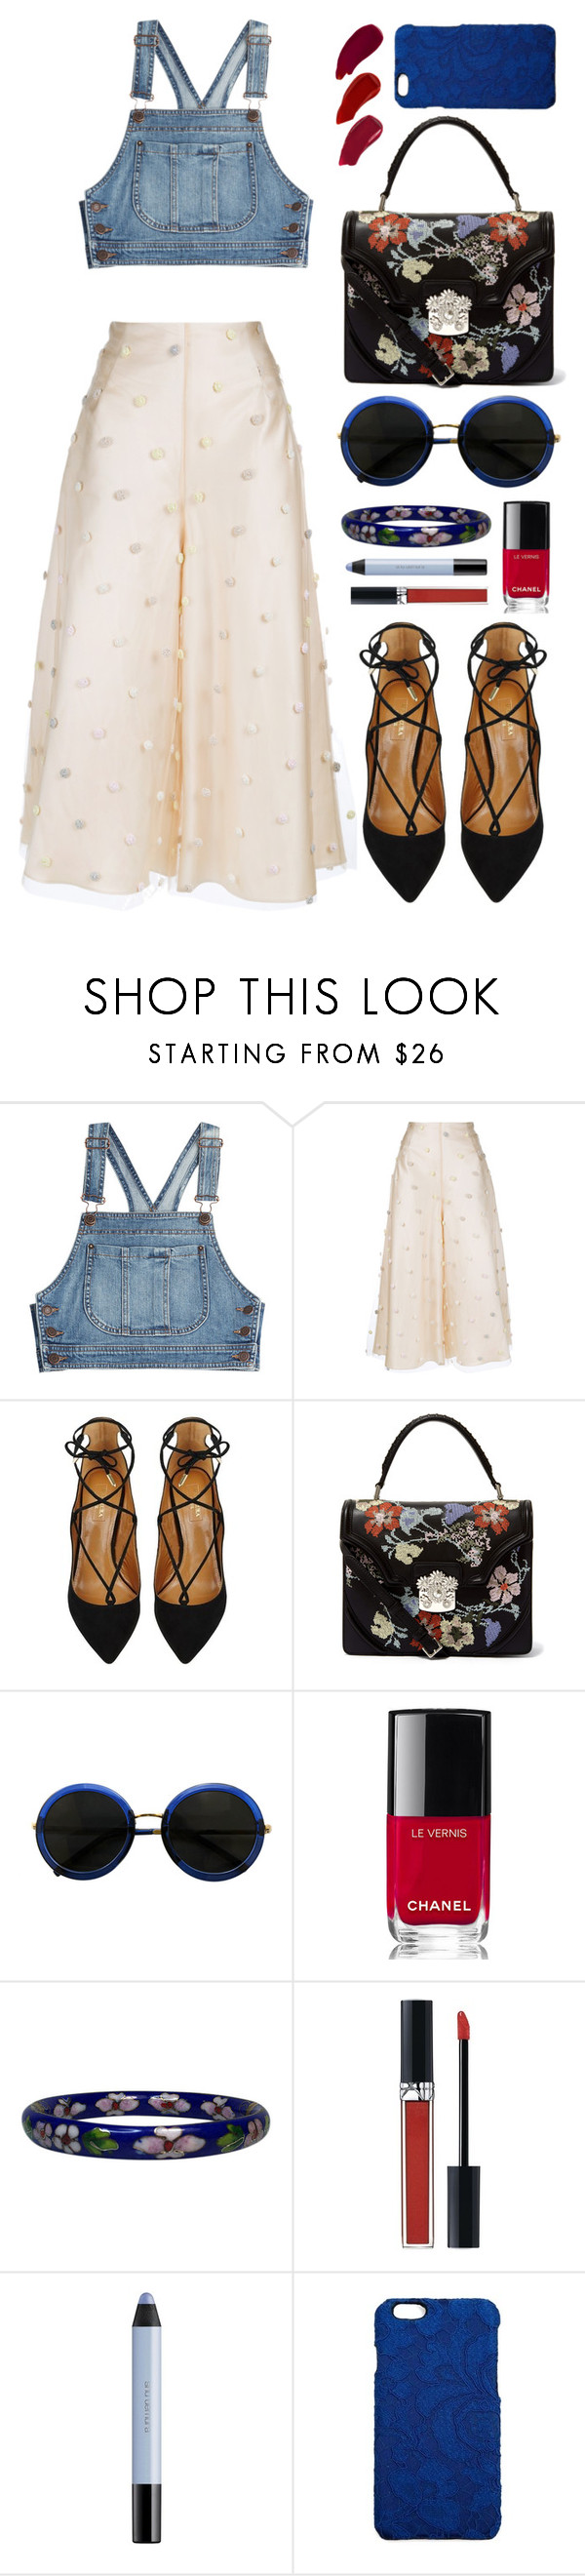 """""""Trending Topic Challenge: Cropped Denim Tops"""" by bechs ❤ liked on Polyvore featuring Moschino, Natasha Zinko, Aquazzura, Alexander McQueen, Chanel, Christian Dior, shu uemura, Dolce&Gabbana and Ellis Faas"""